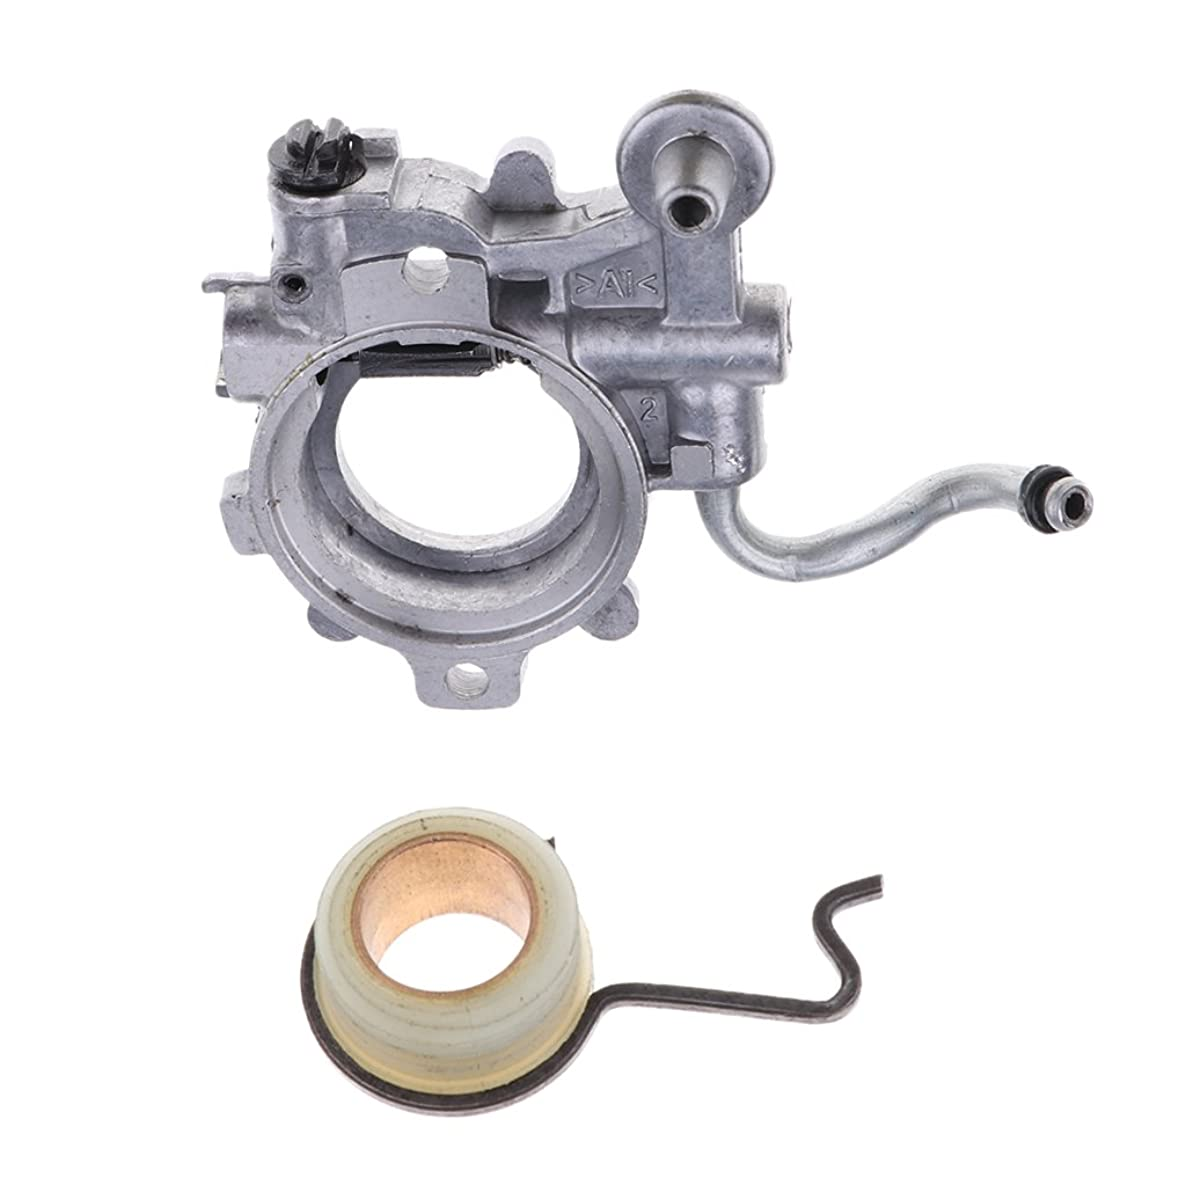 MonkeyJack 3pcs Oiler Oil Pump WT Worm Gear Spring for STIHL 044 MS440 Chainsaw Replacement